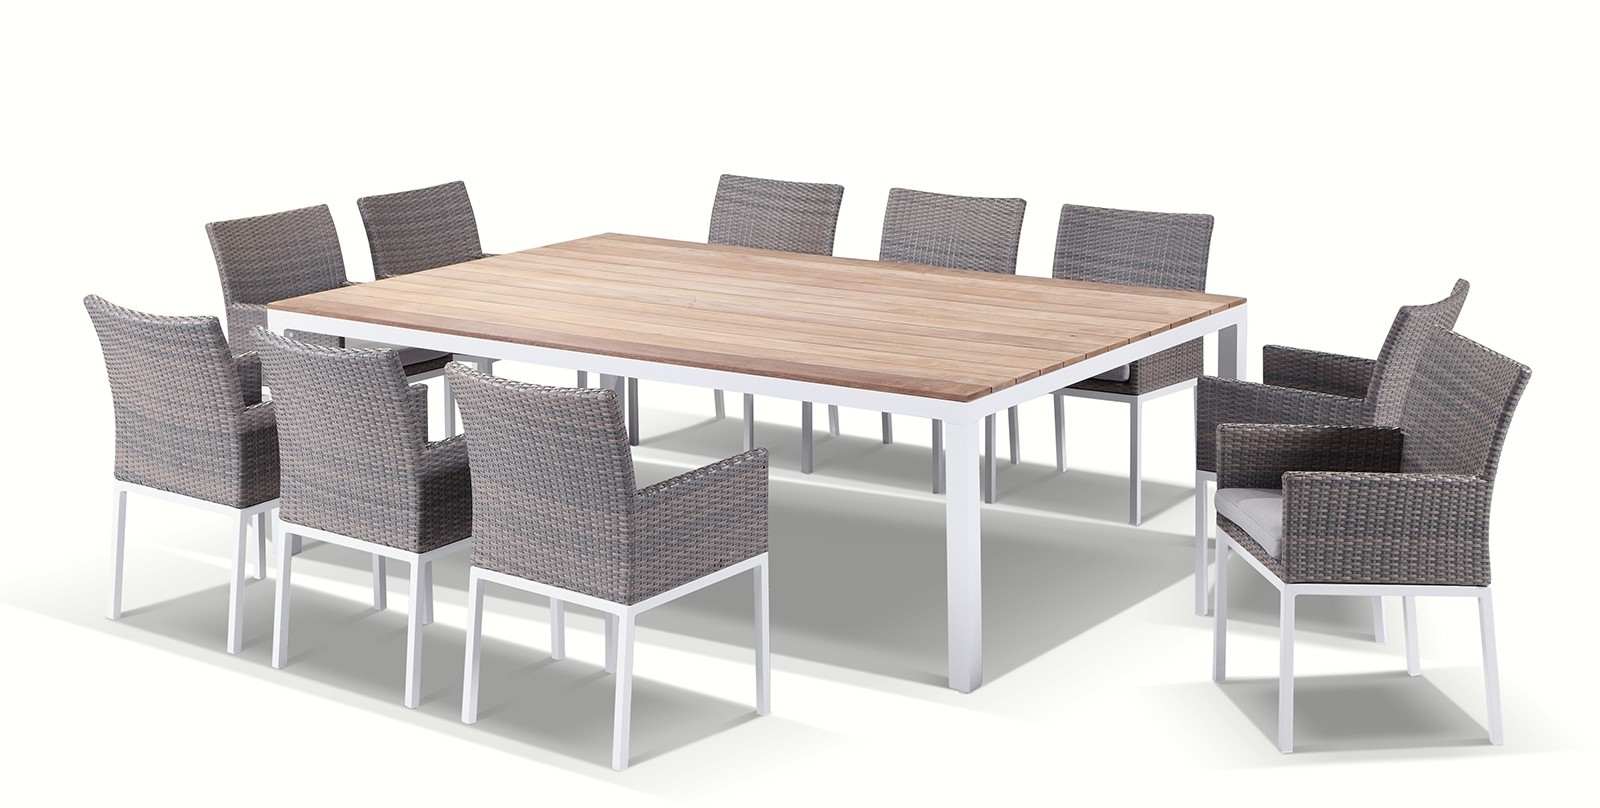 10 Seater Dining Tables And Chairs Within Most Current Tuscany 10 Seater Teak And Aluminium Dining Setting (View 9 of 25)